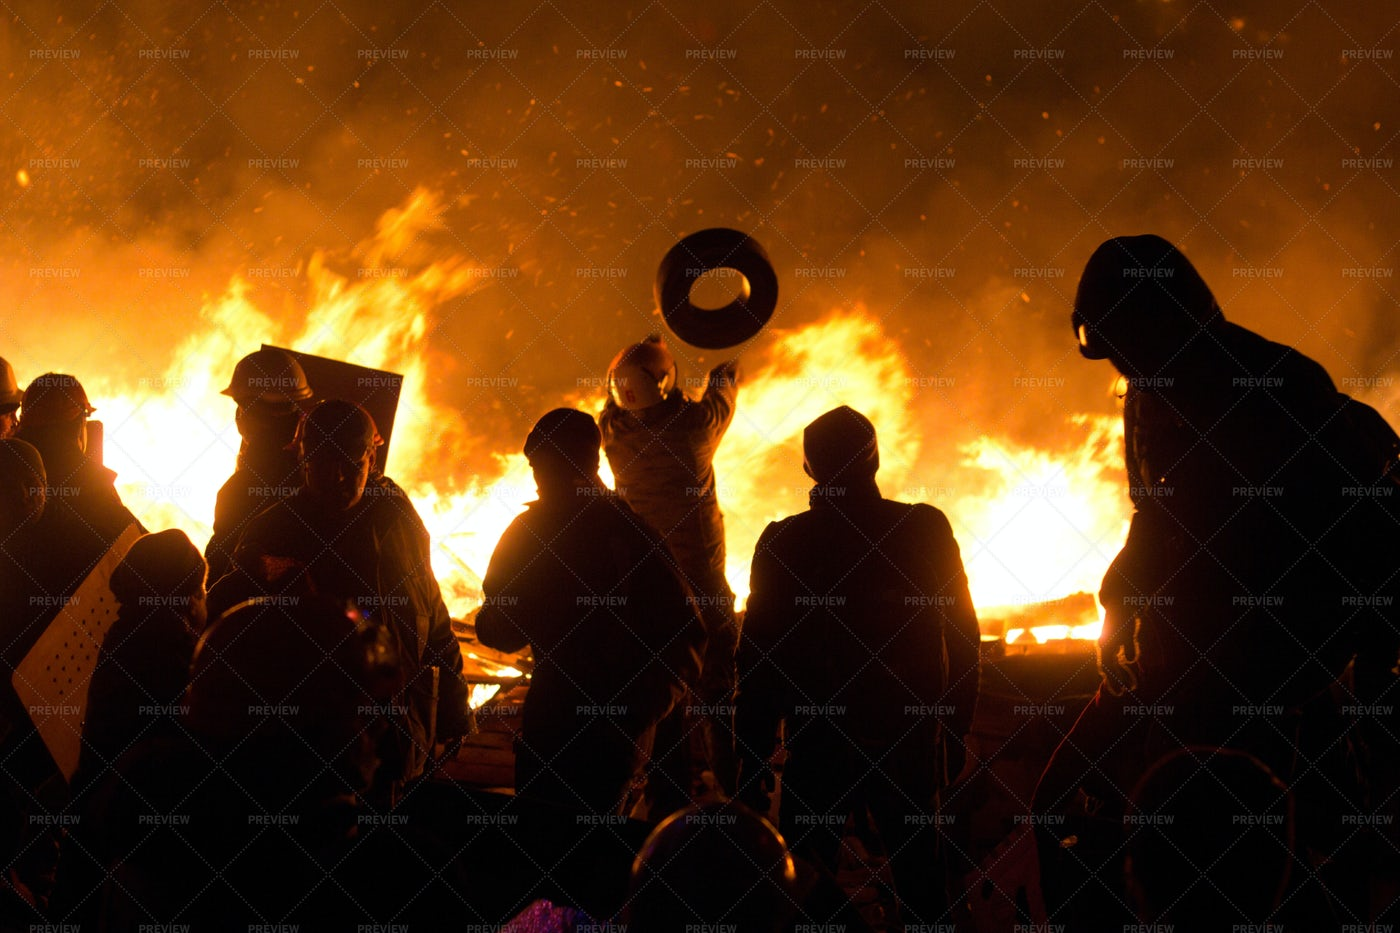 Protesters Set Fire To Barricades: Stock Photos